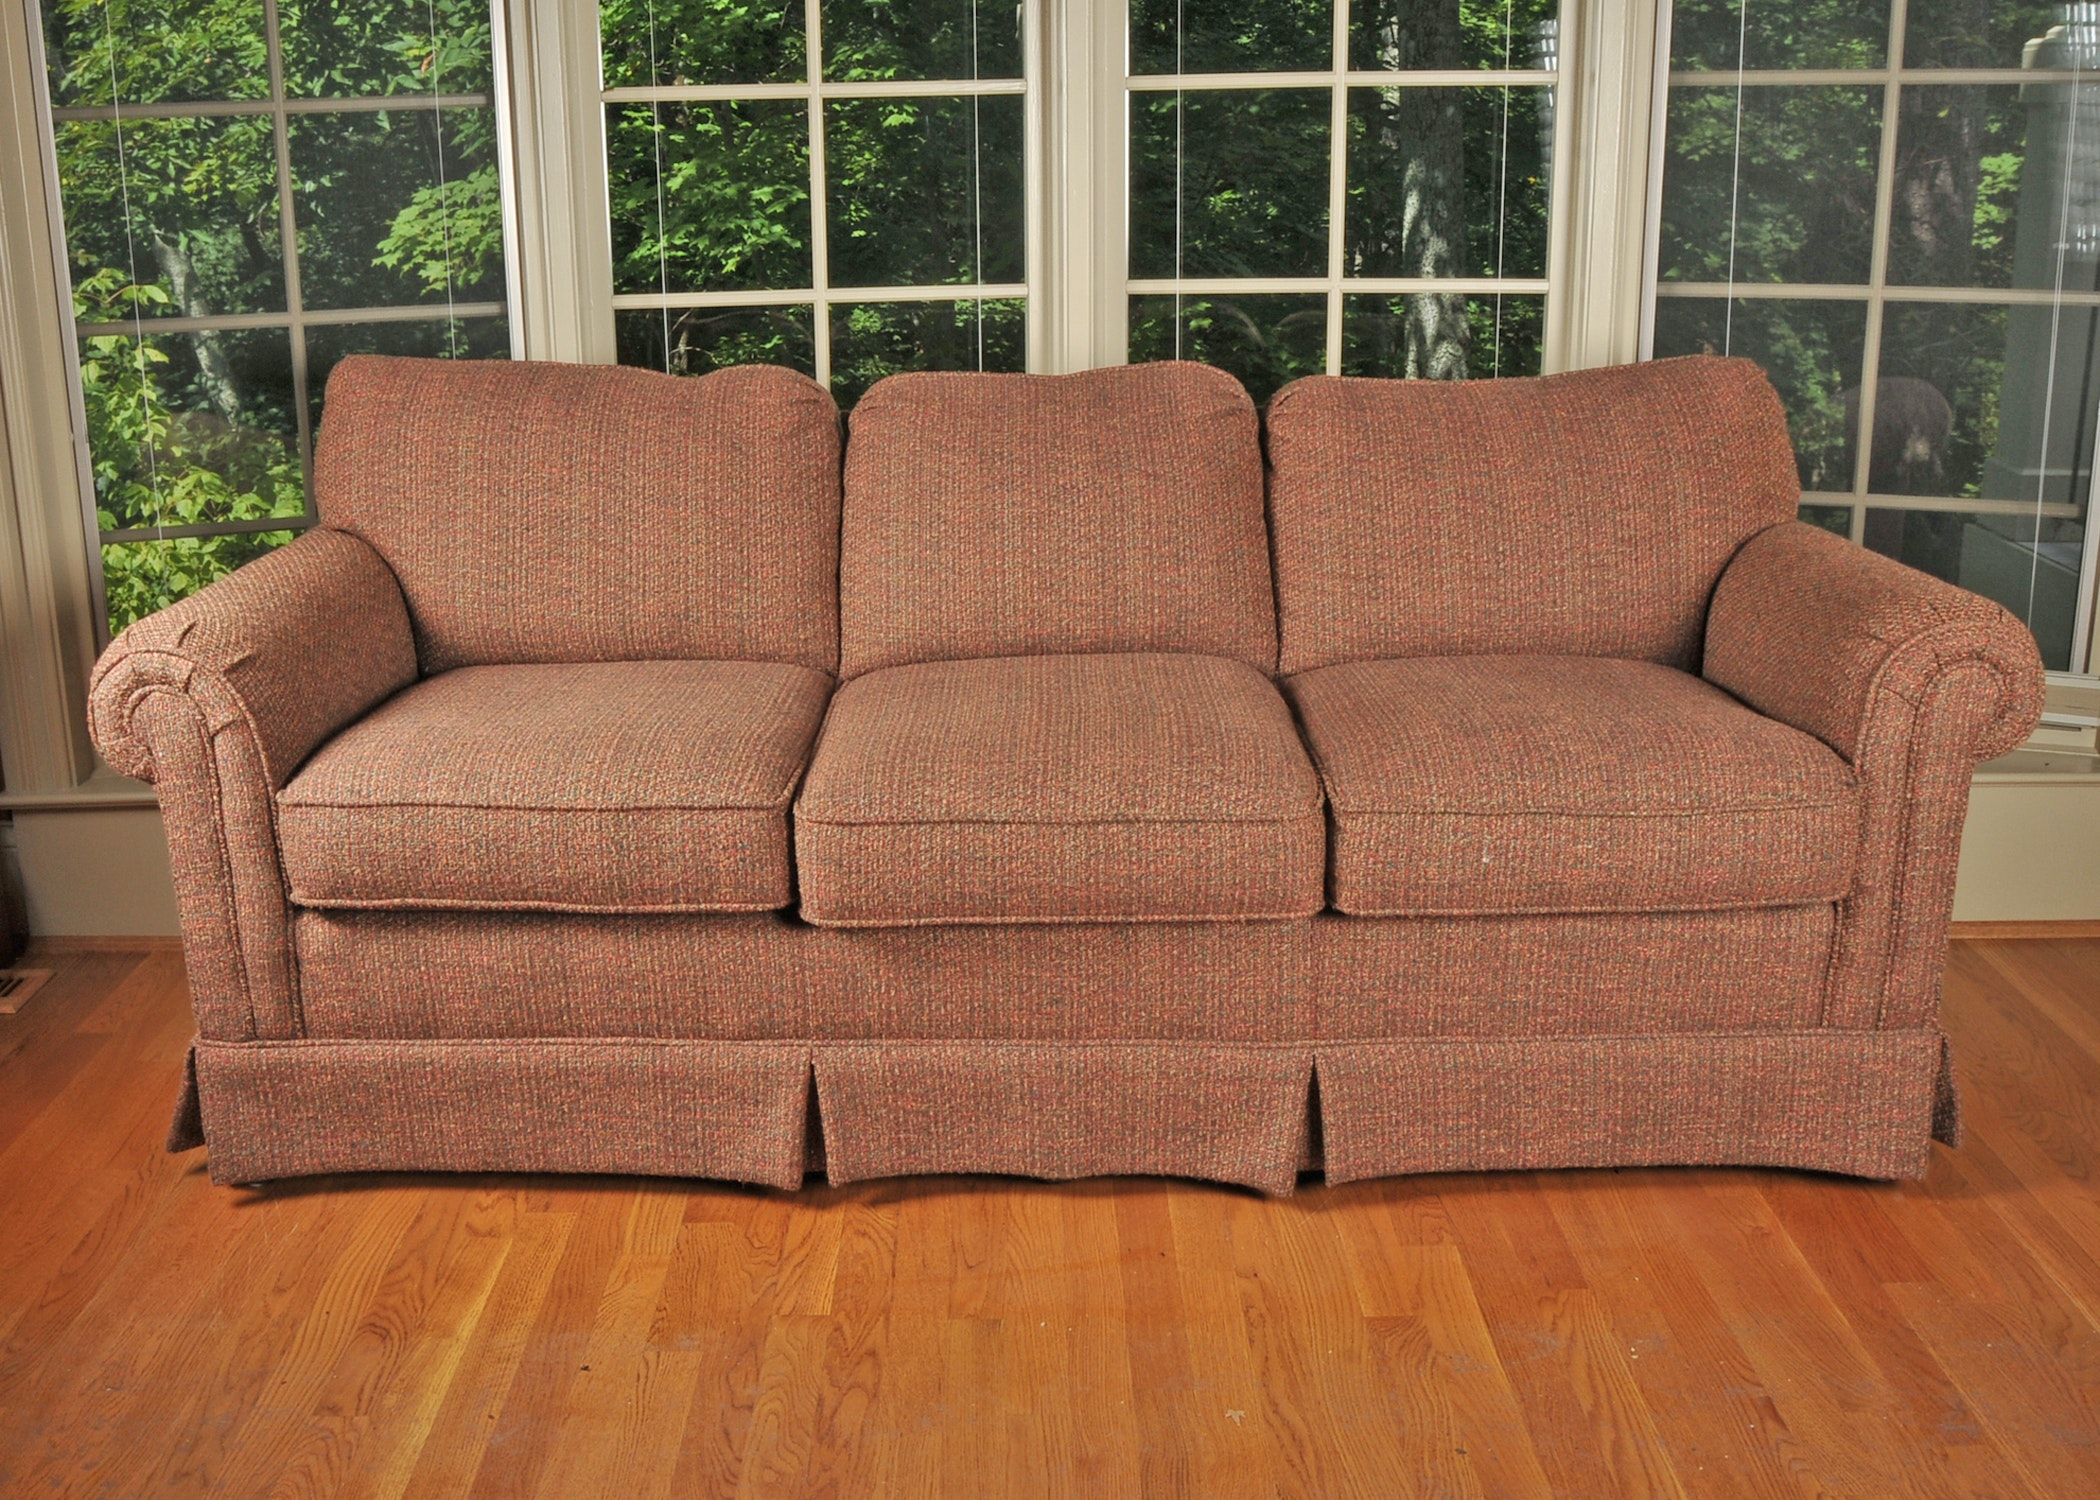 Taylor King Sofa With Rolled Arms